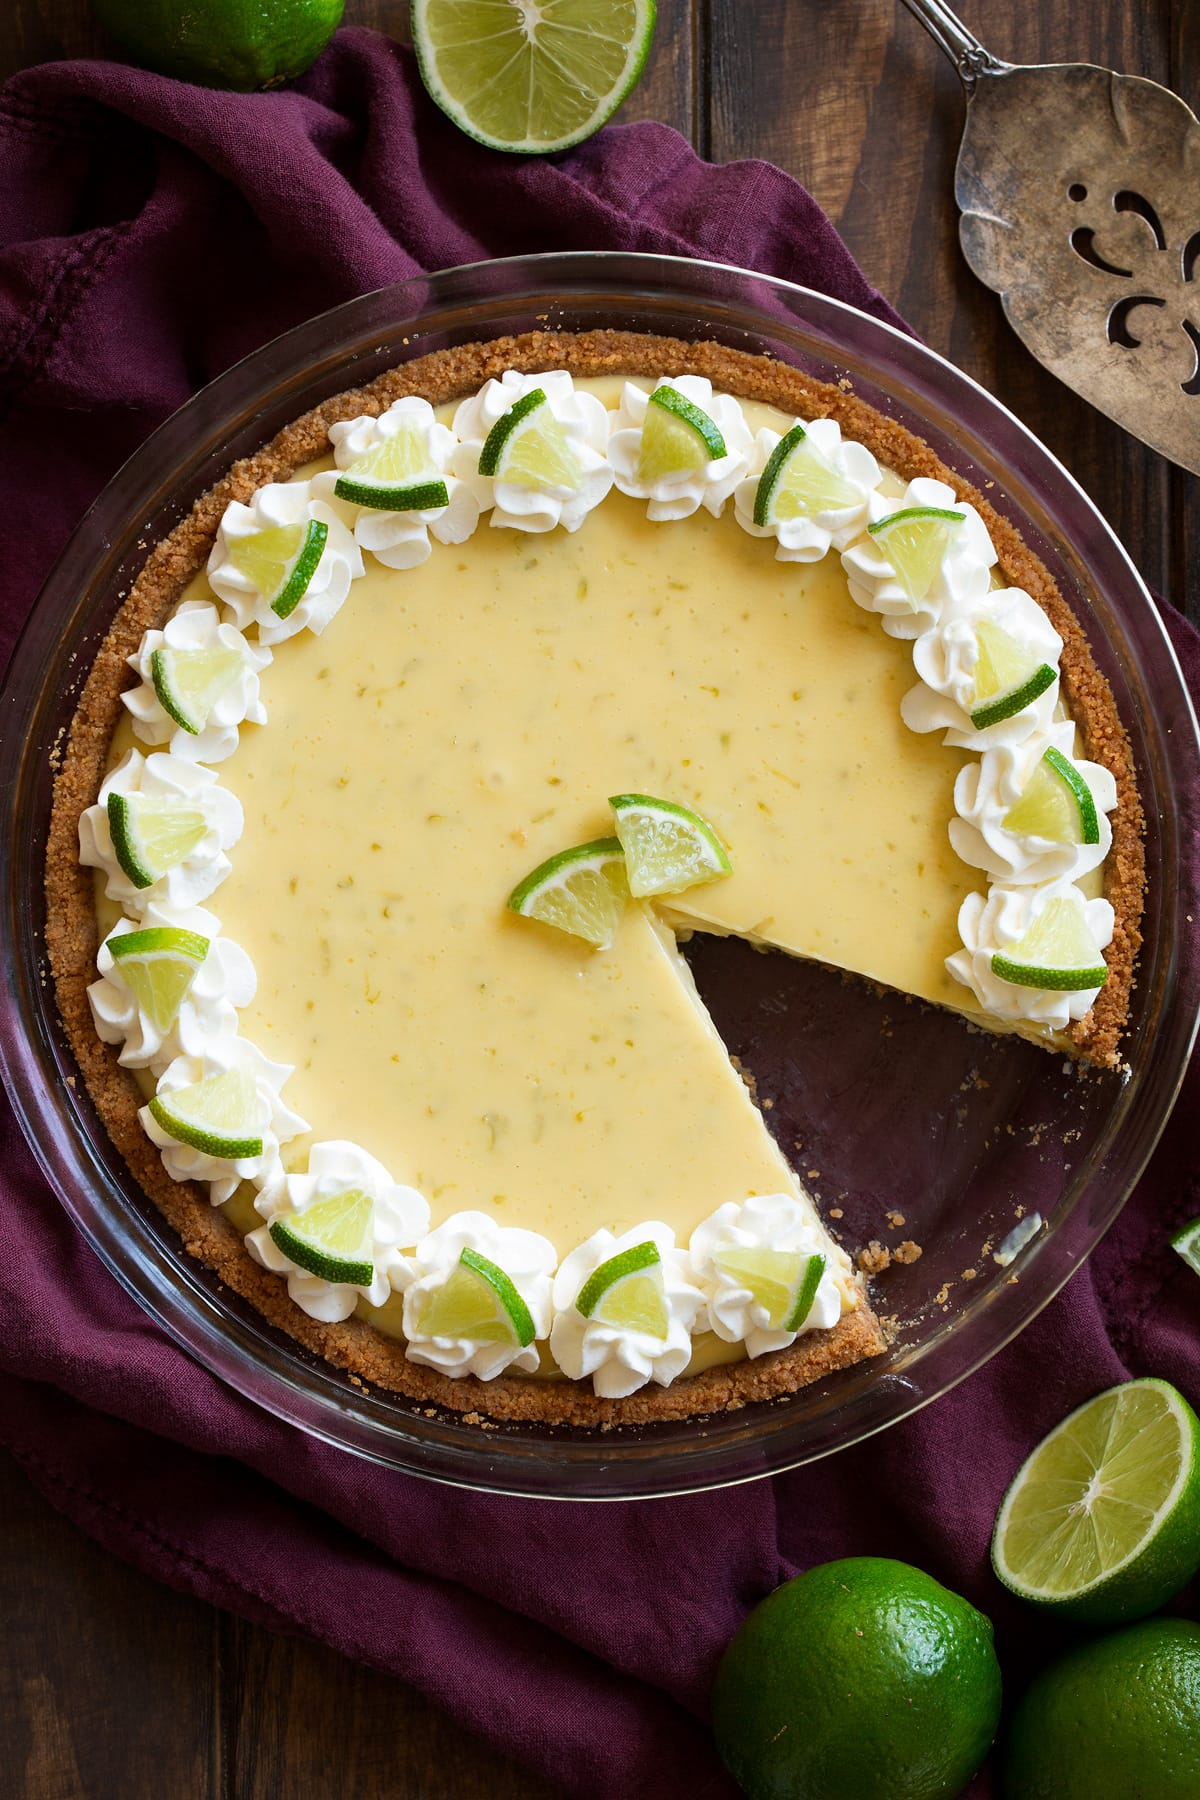 Whole key lime pie with one slice removed. Pie is decorated with swirls of whipped cream around the edges and mini lime slices.